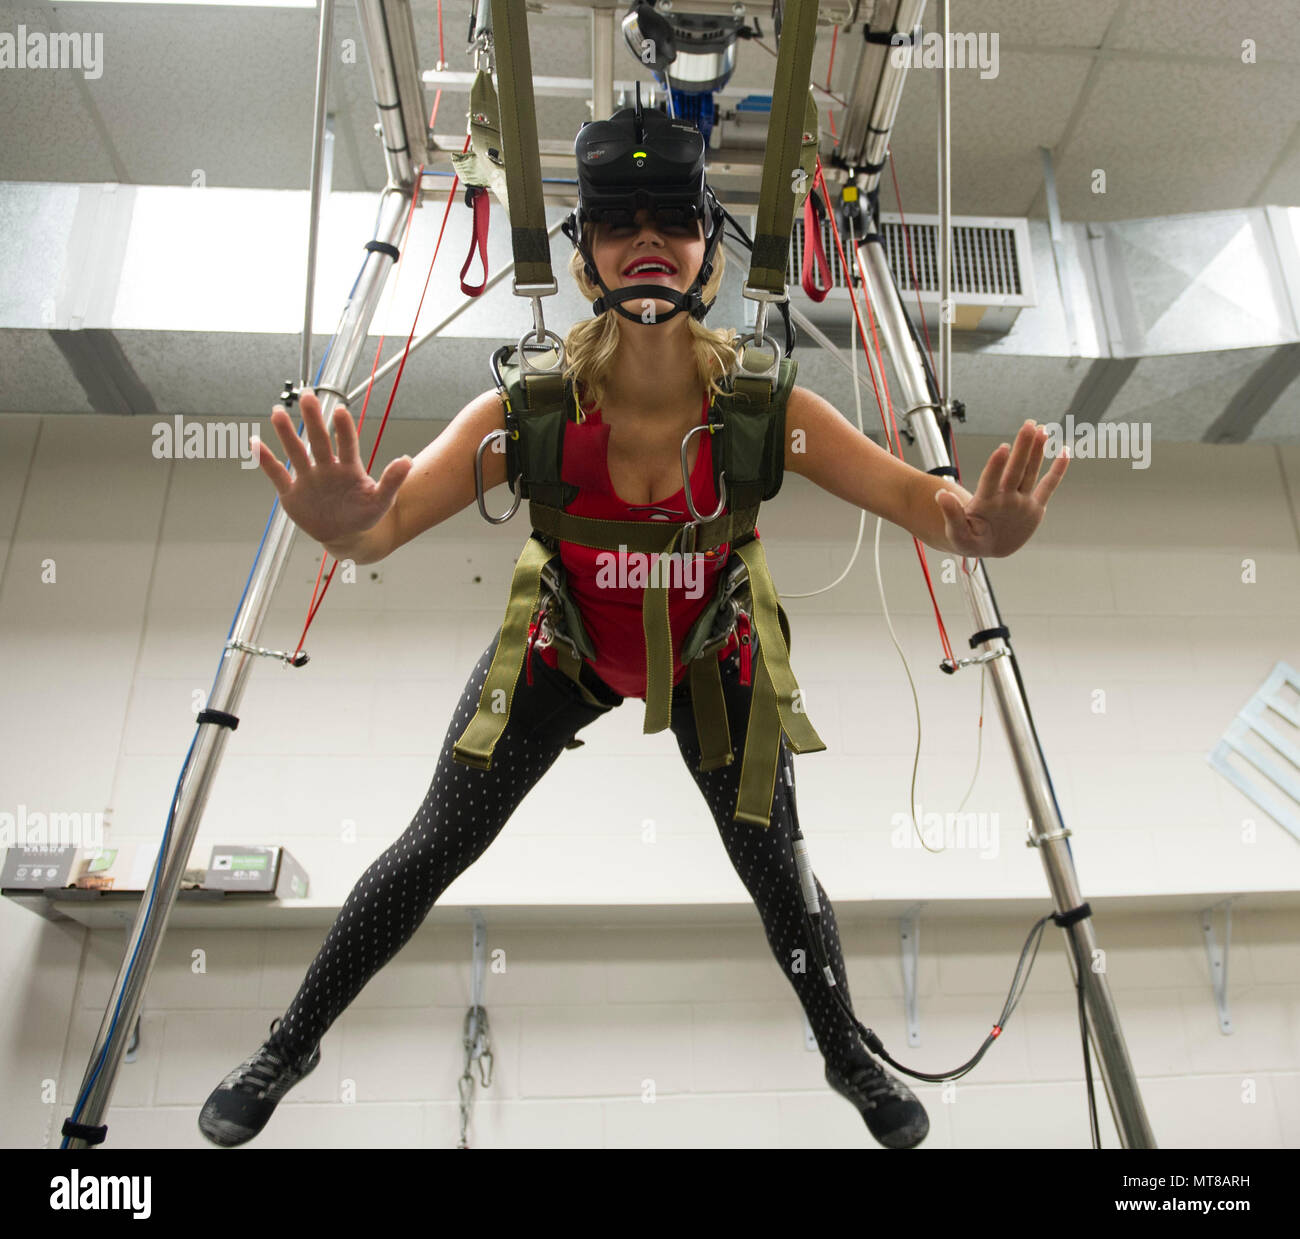 Demi, a Tampa Bay Buccaneers cheerleader, experiences freefall in the MC-60 parachute simulator at the parachute rigging facility while visiting MacDill Air Force Base in Tampa, Fla., Nov. 7, 2017. The cheerleaders toured U.S Special Operations Command and other base facilities to meet with service members and to get a glimpse of military life. (Photo by Army Sgt. Jose Reyes) Stock Photo